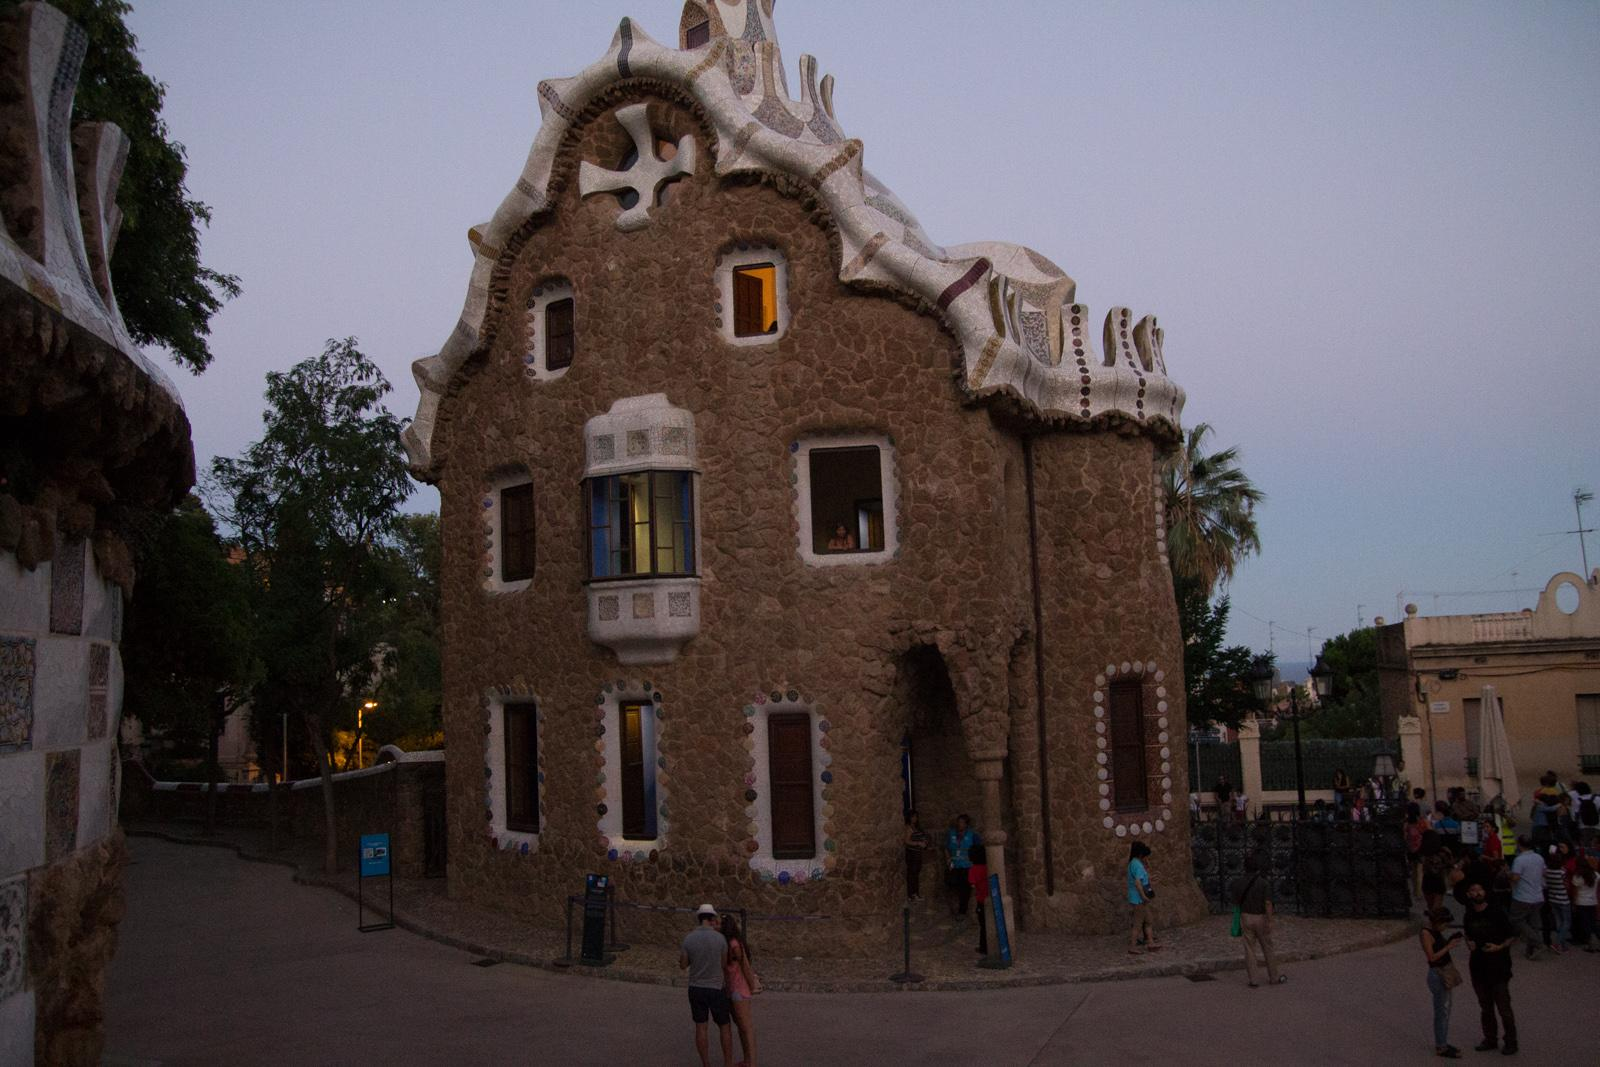 House by Gaudi in Park Güell